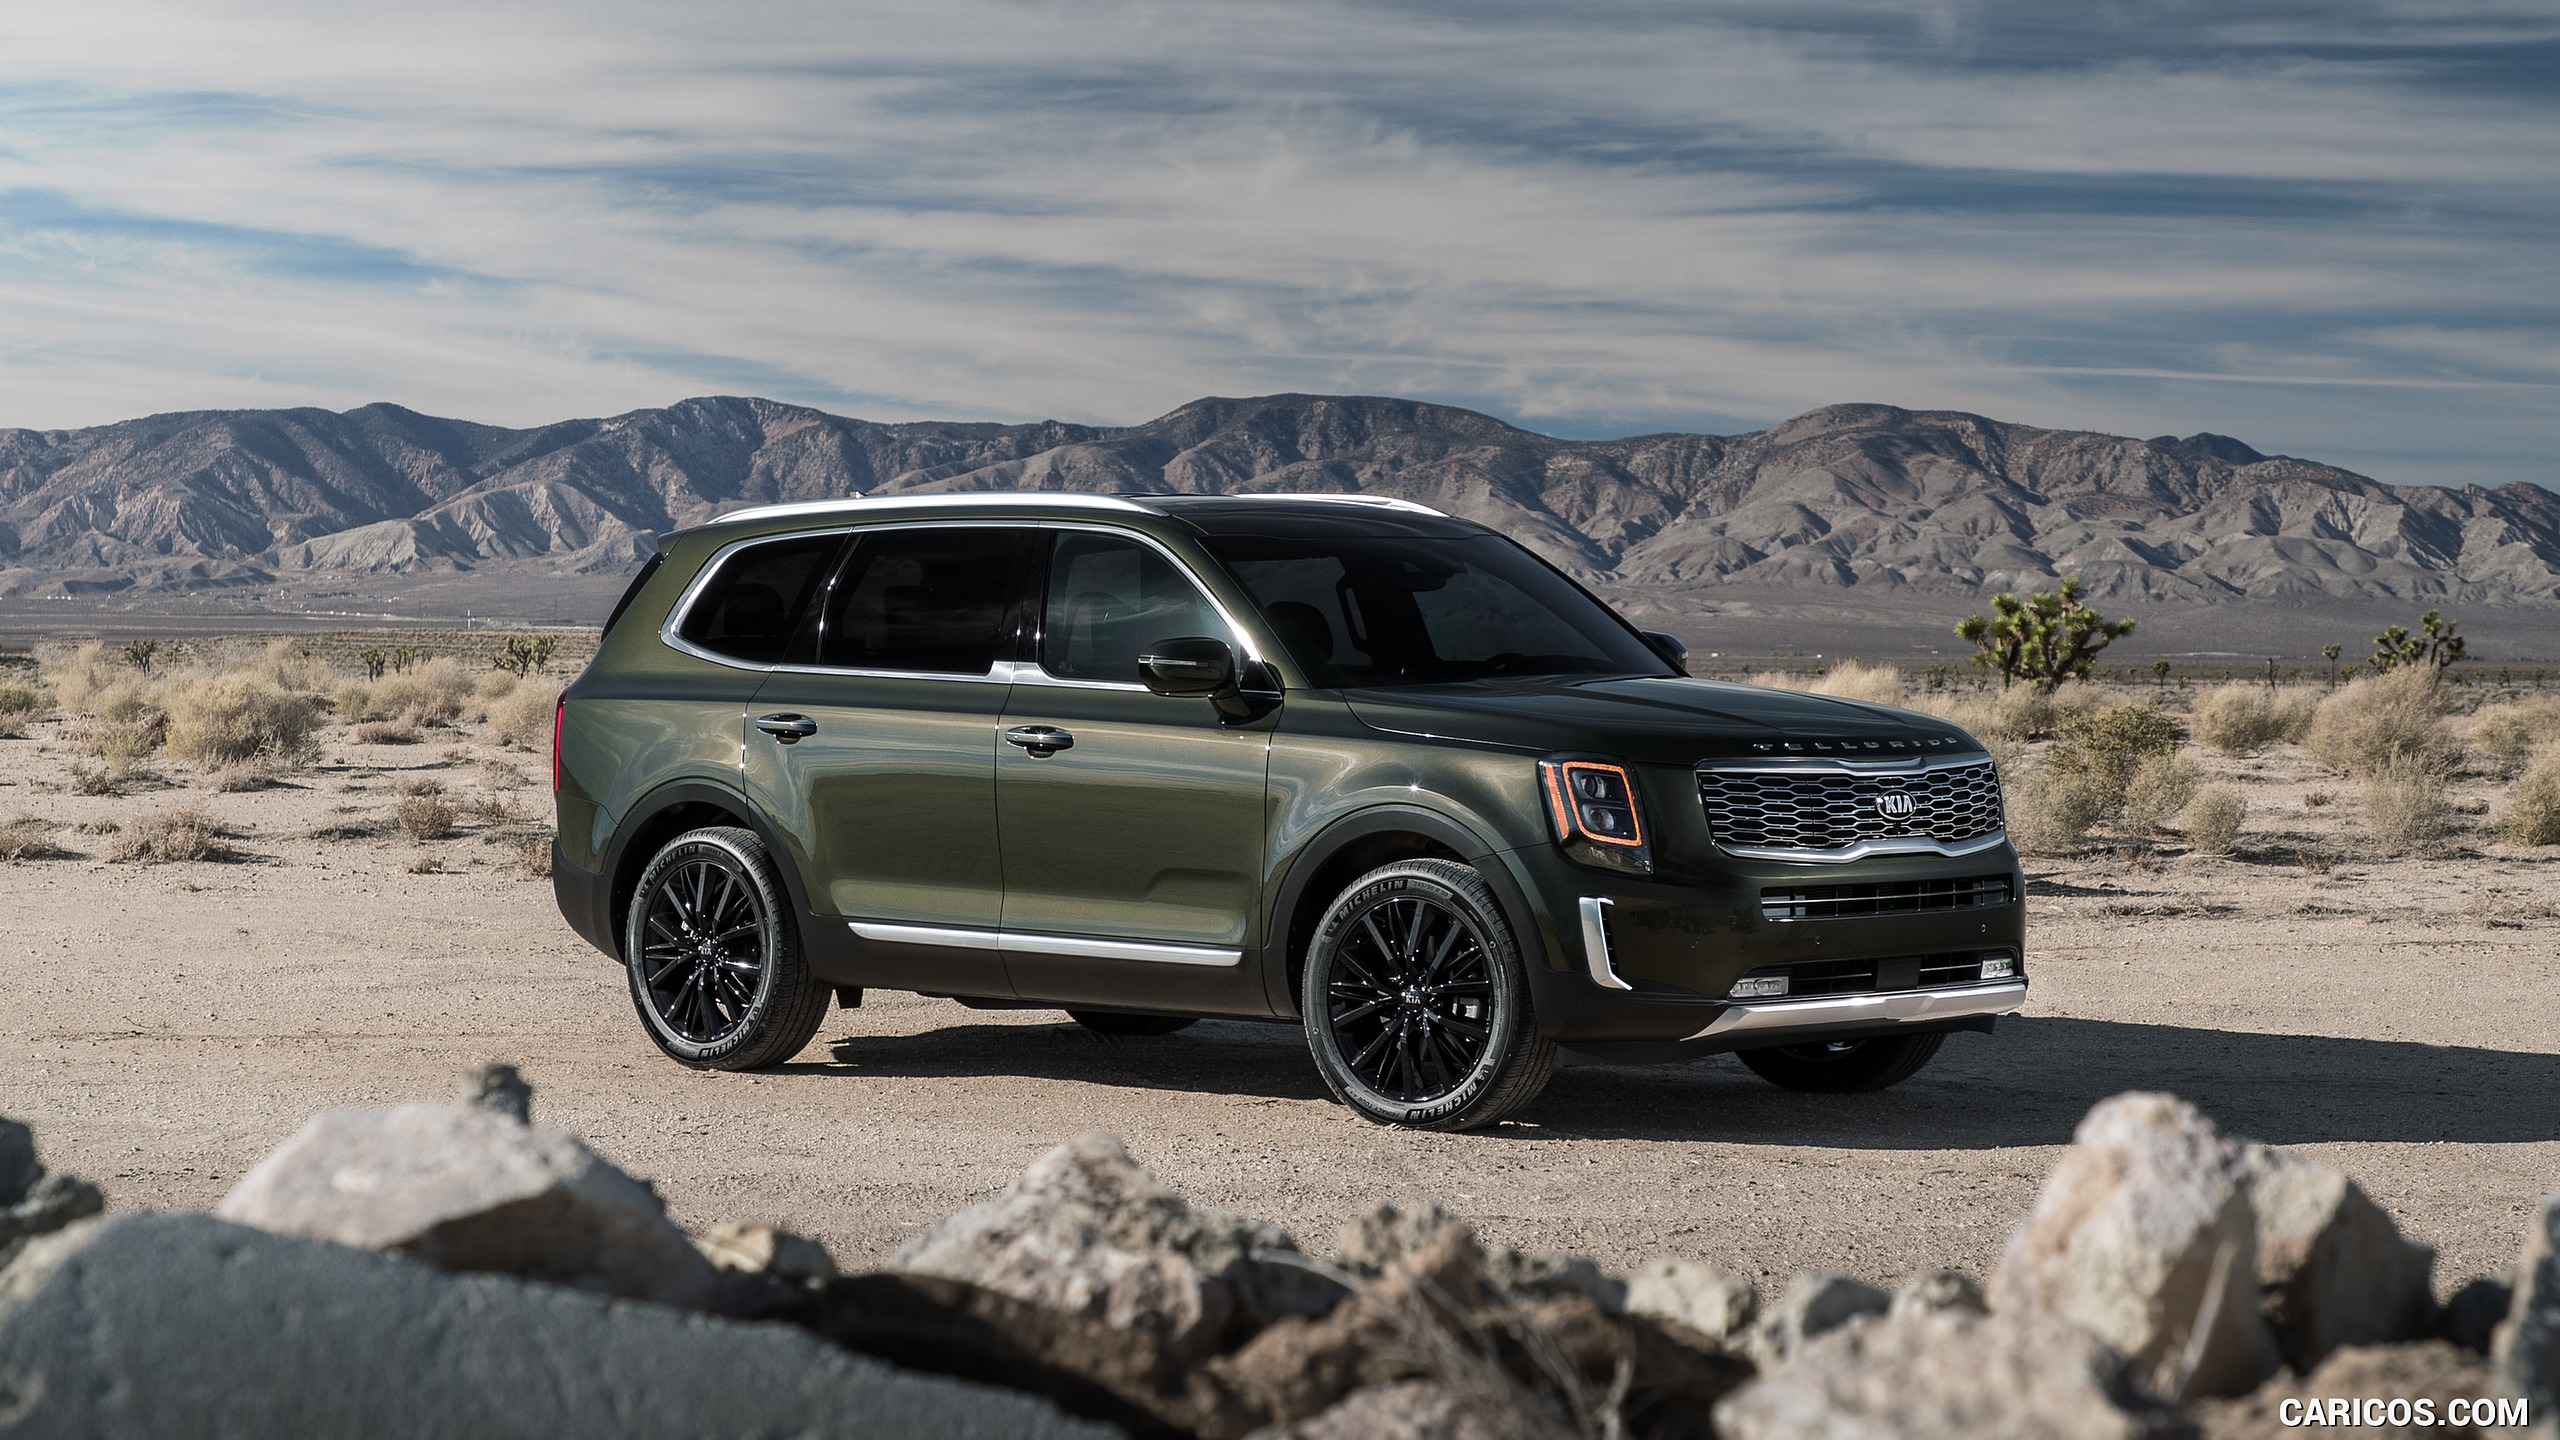 2020 Kia Telluride   Front Three Quarter HD Wallpaper 21 2560x1440